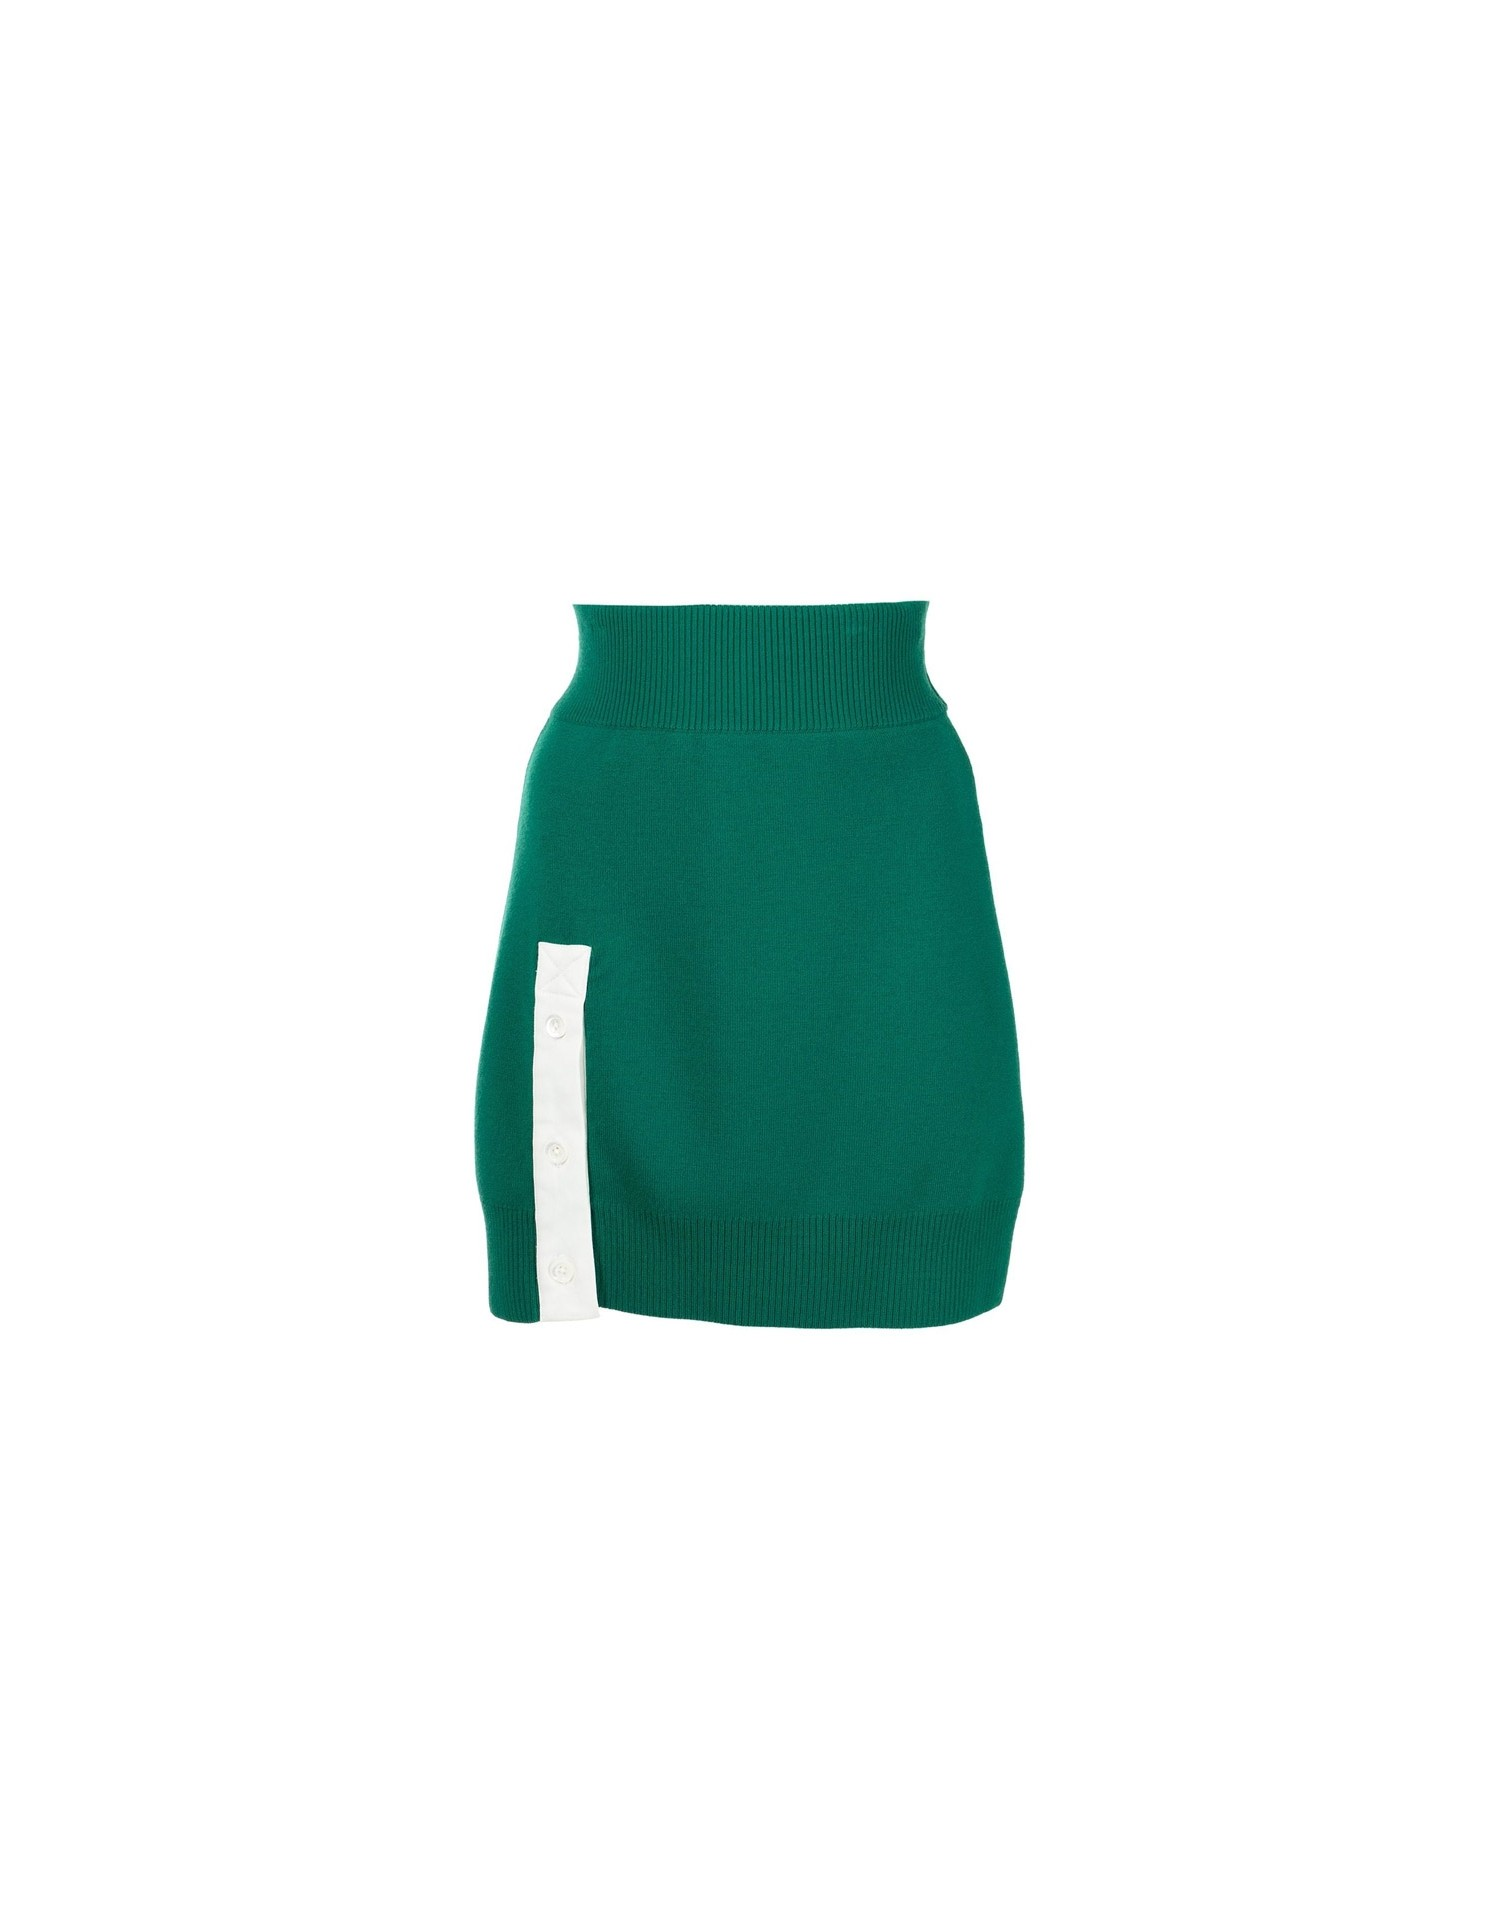 MONSE Rugby Knit Mini Skirt in Grass and Ivory Flat Front